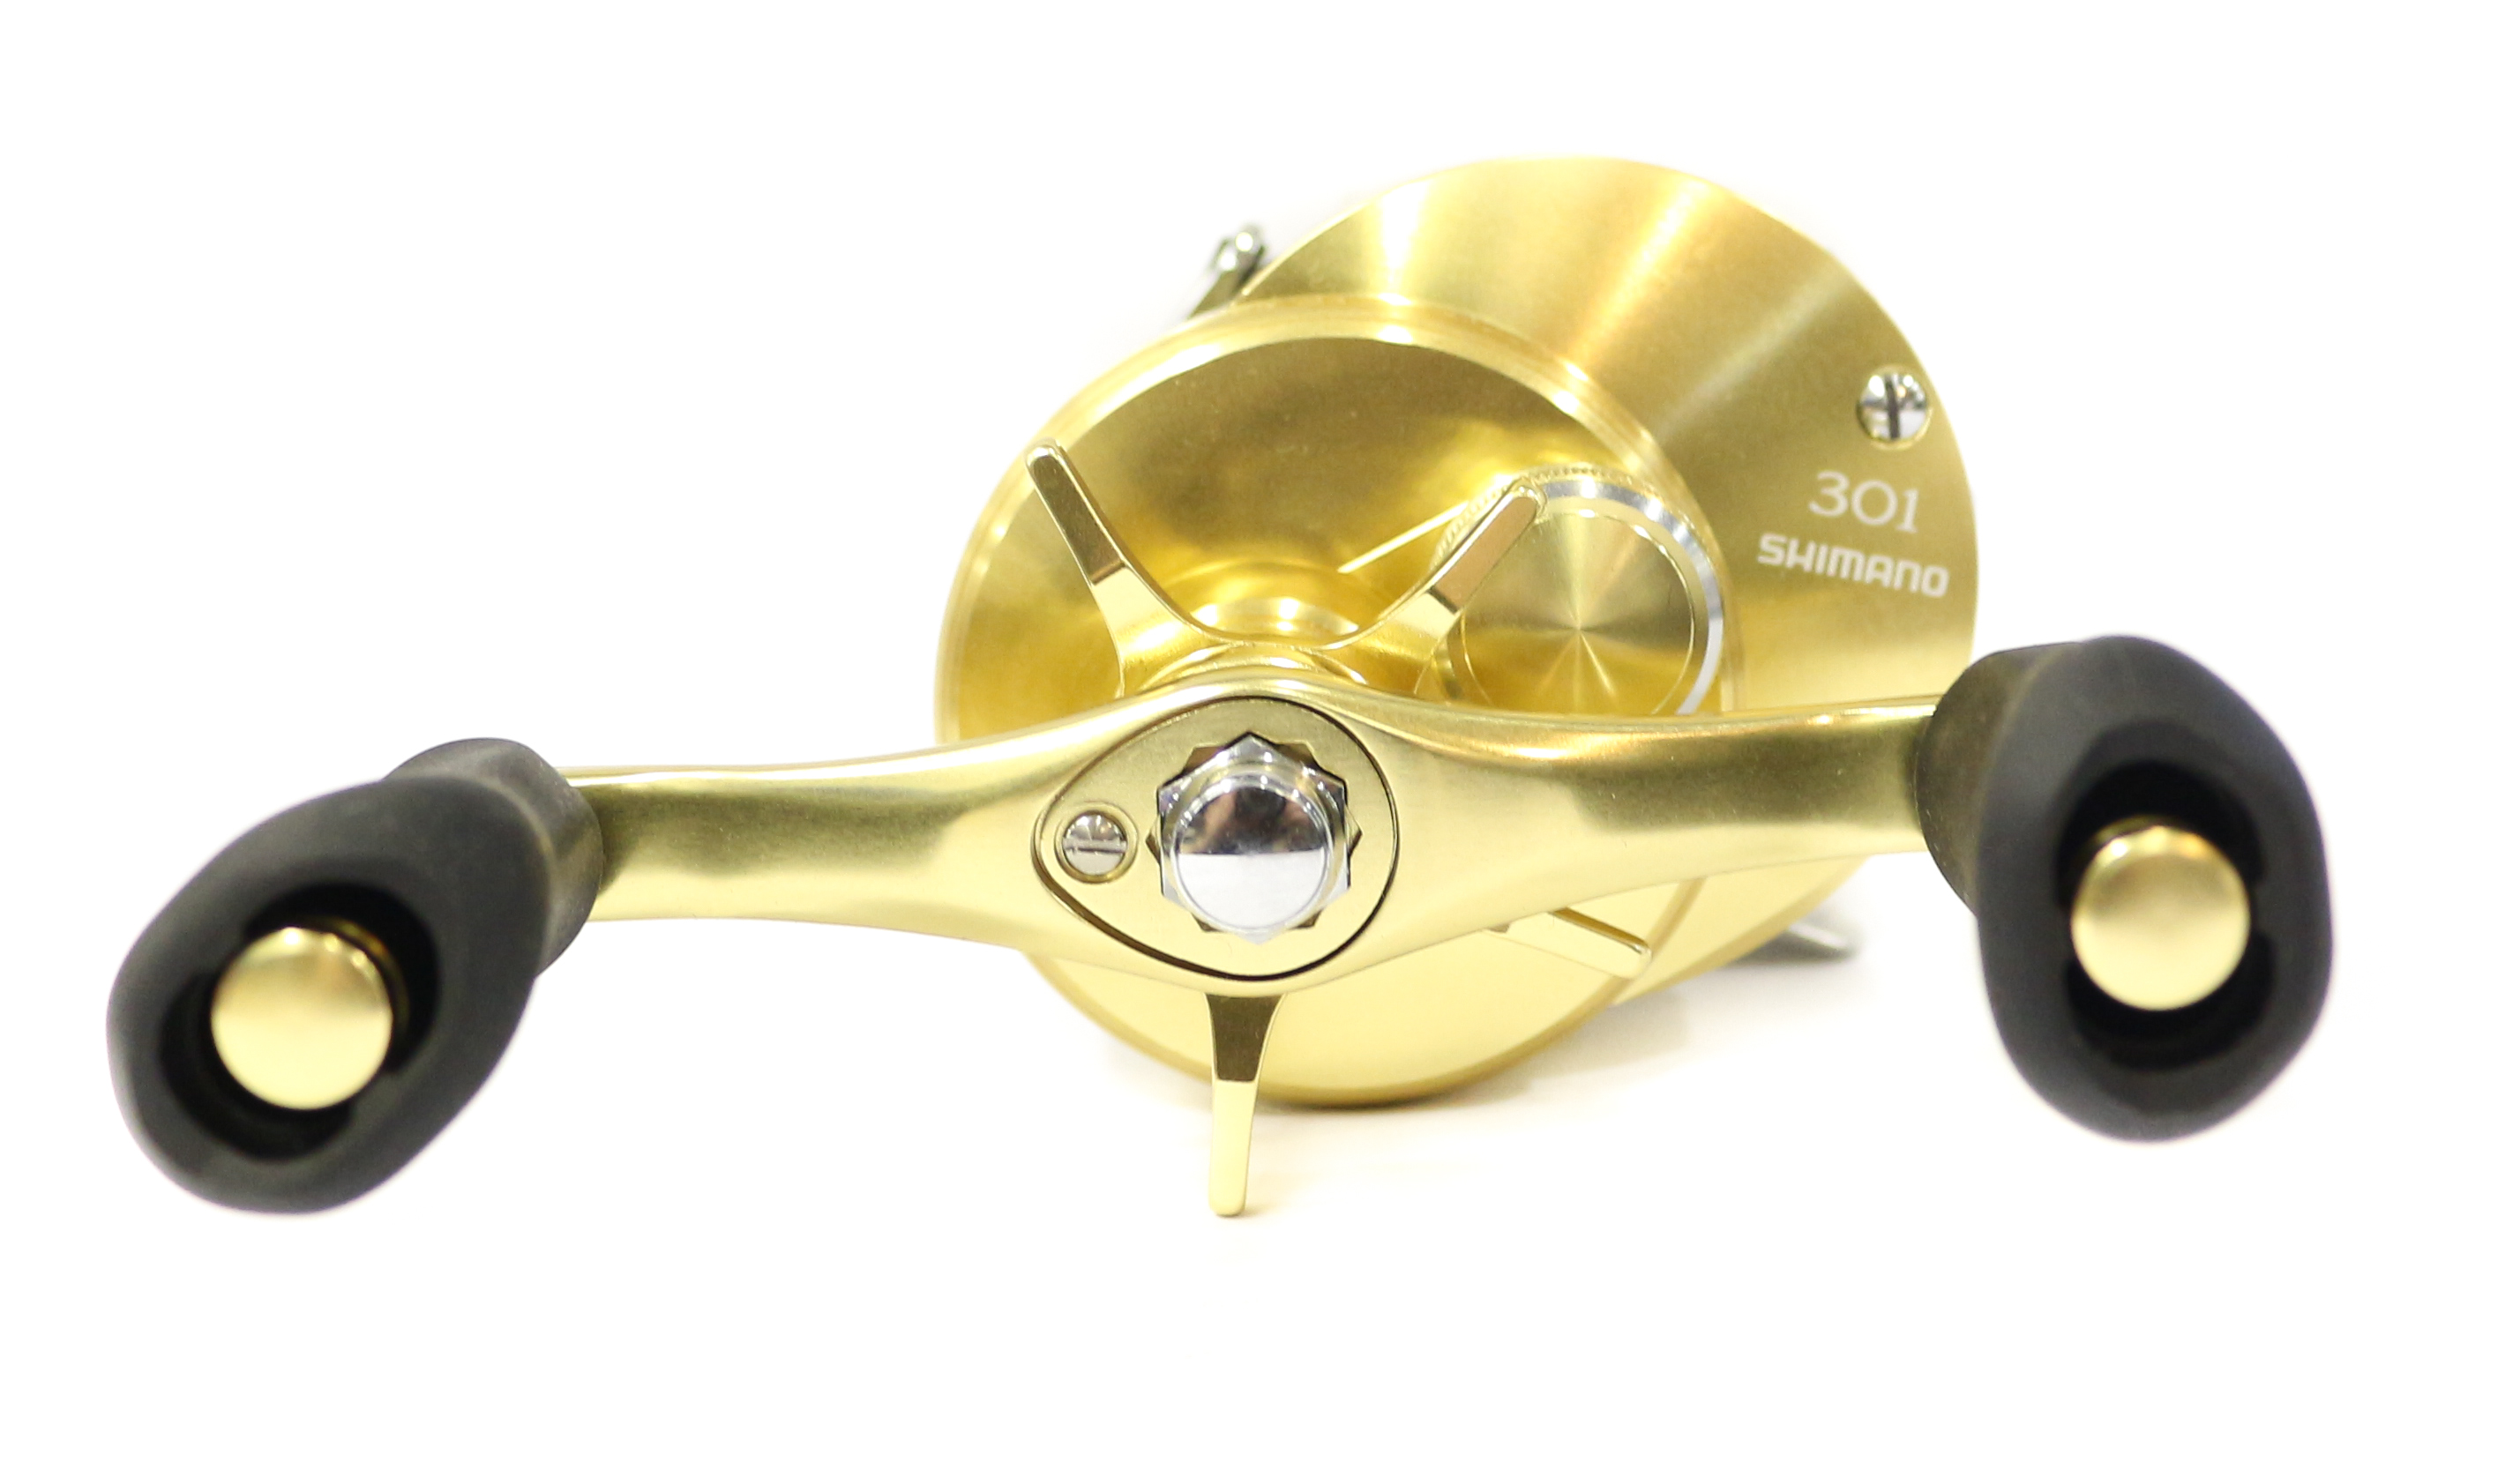 Shimano Reel Baitcast Calcutta Conquest 301 Left Hand (3604)